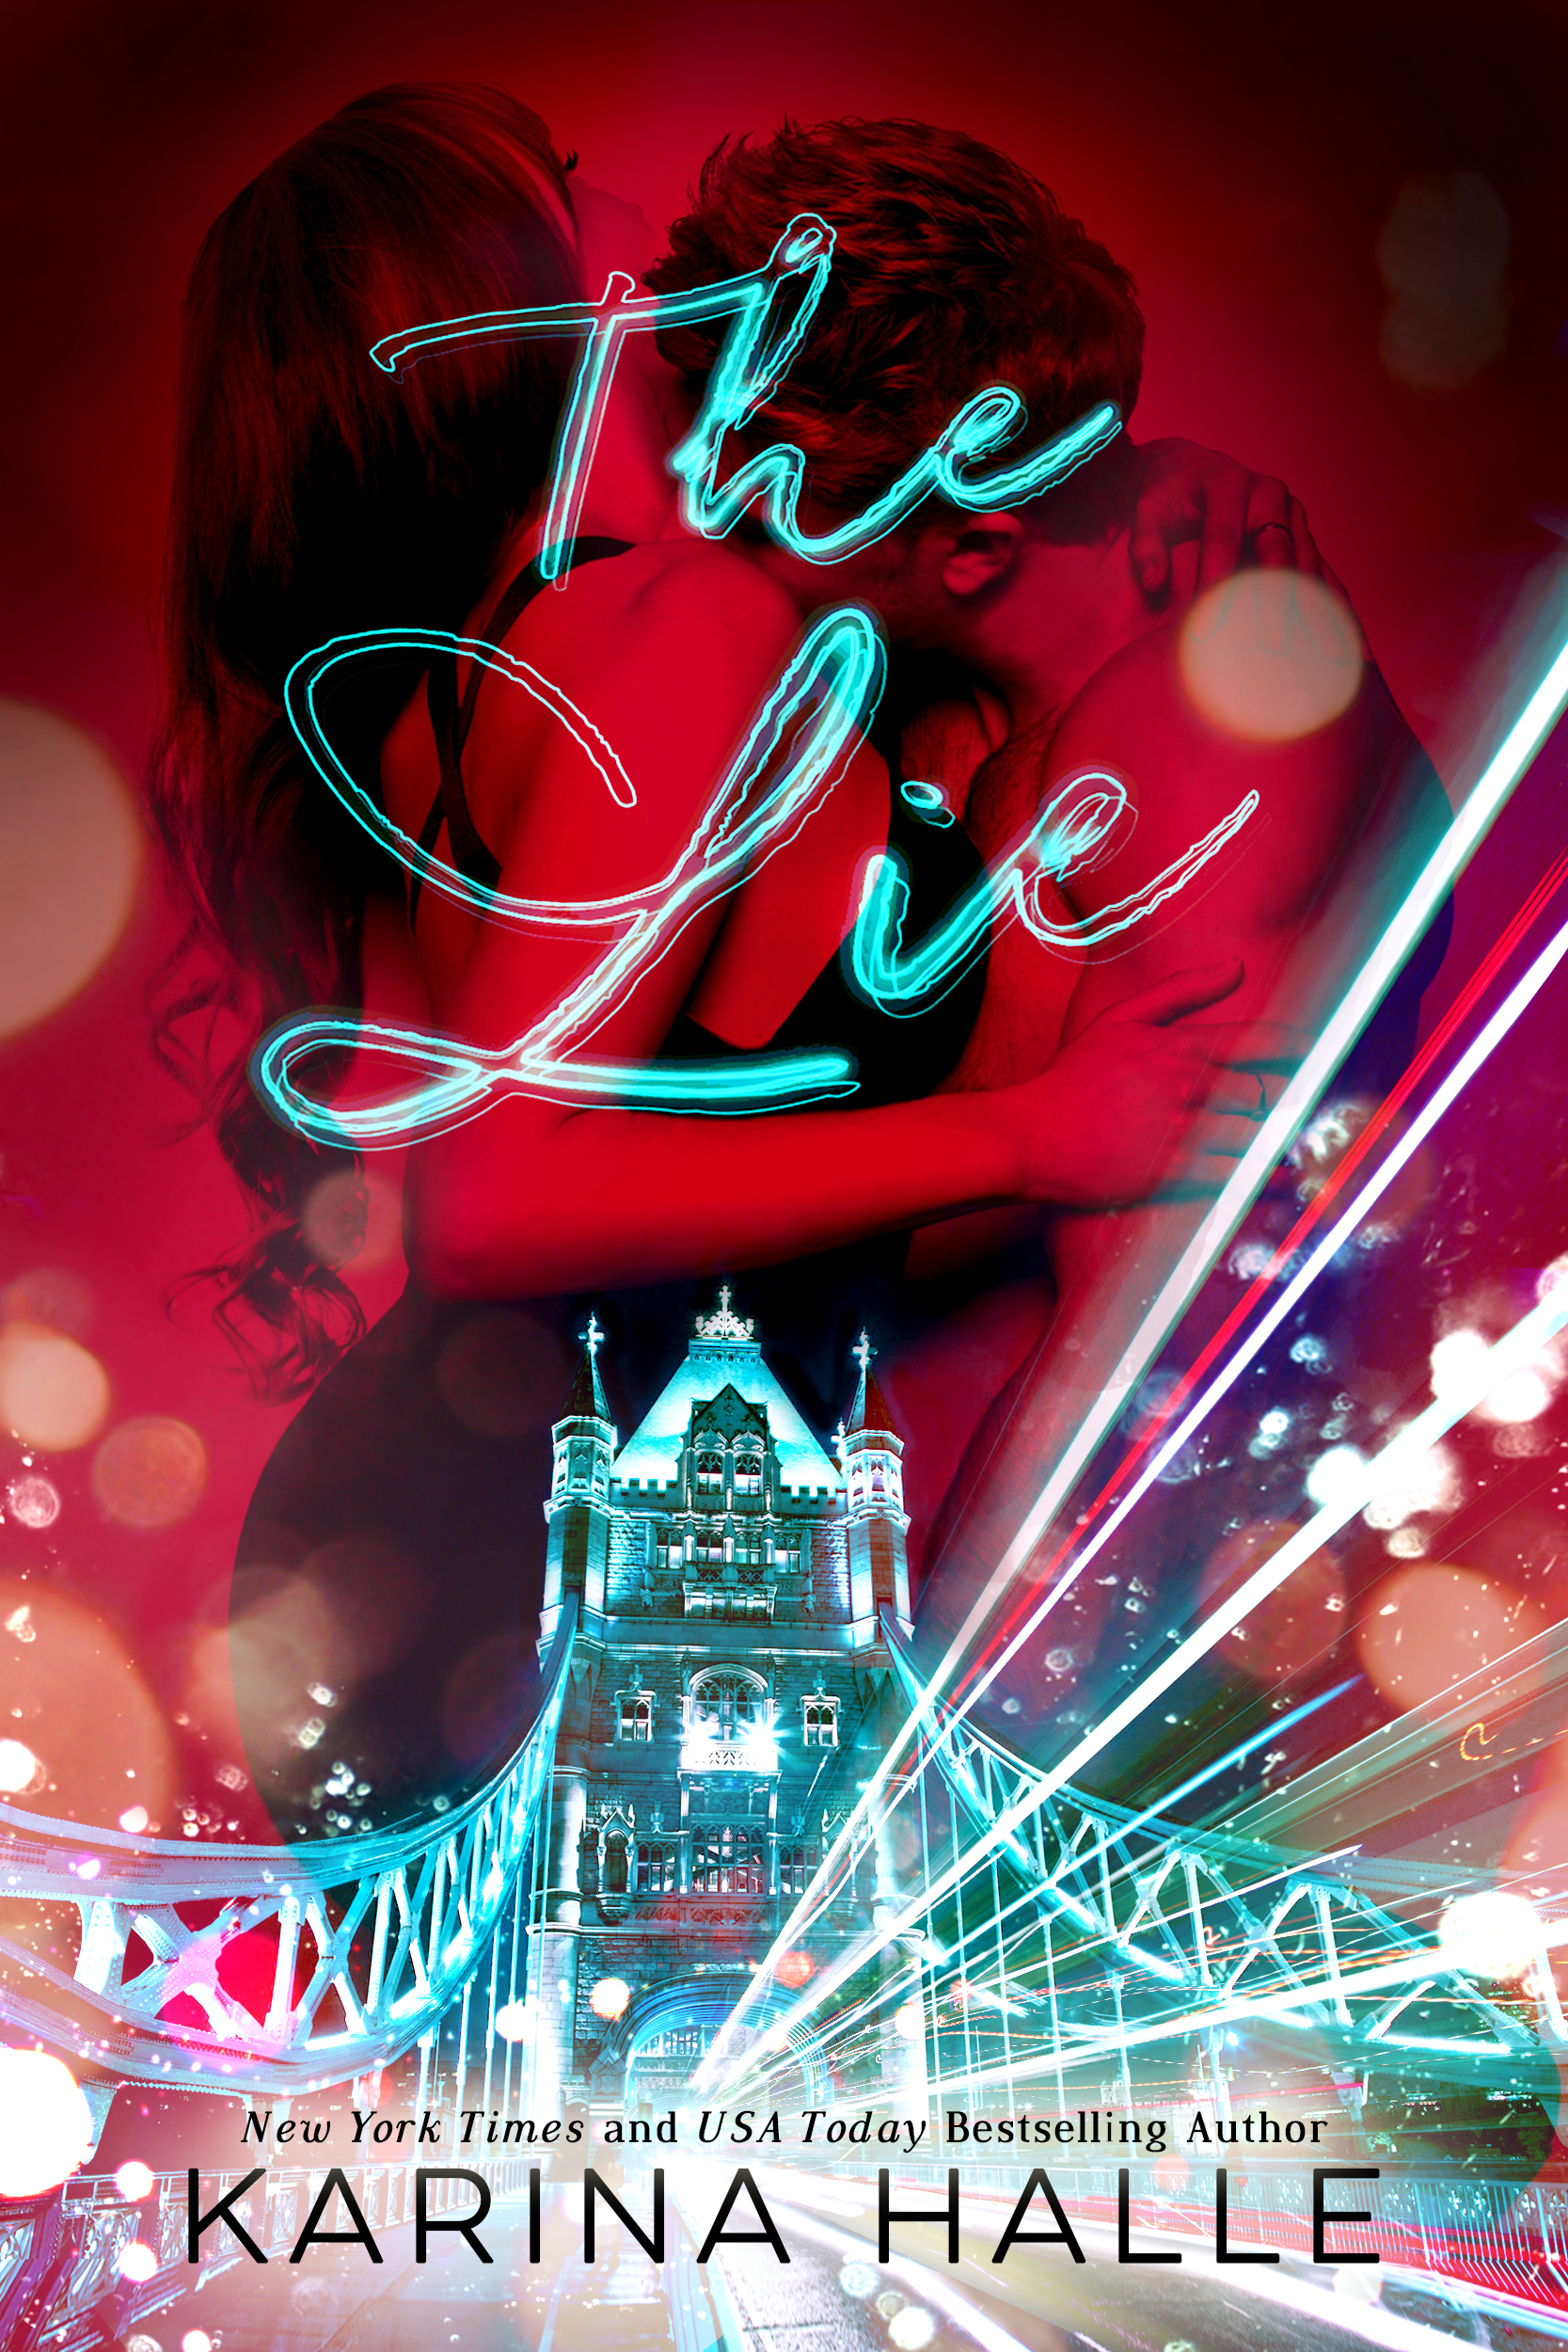 In Review: The Lie by Karina Halle